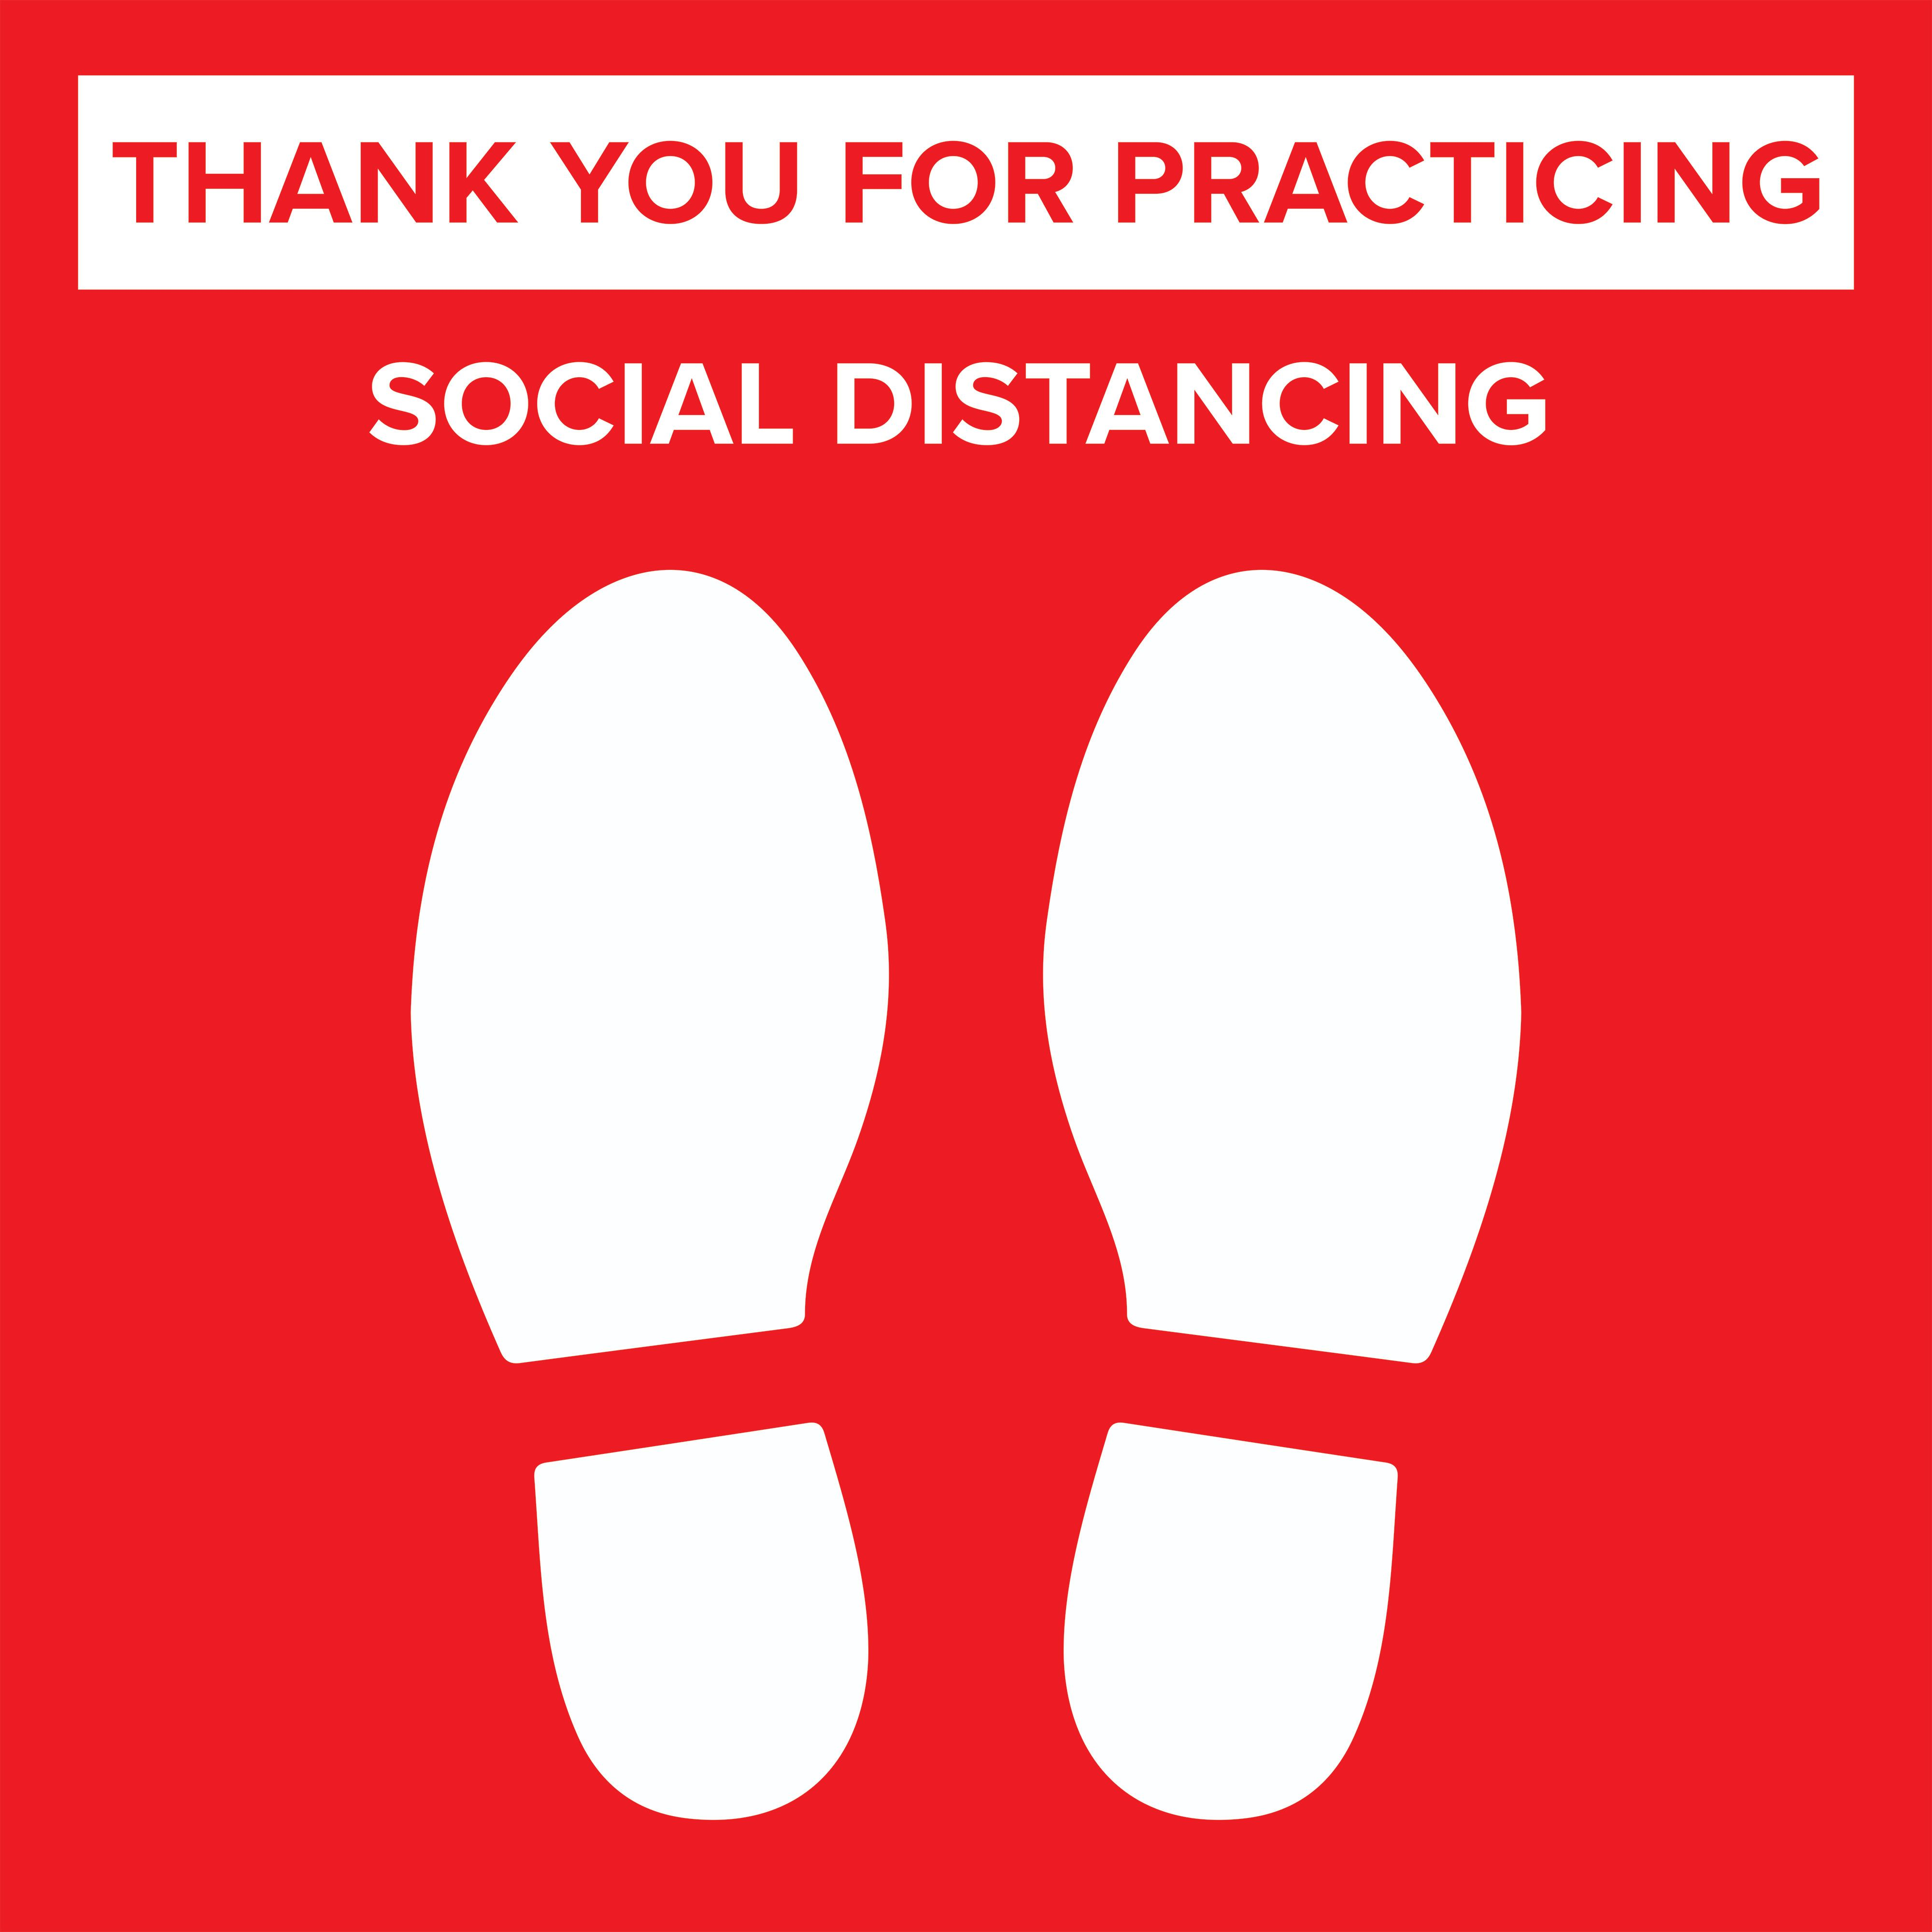 24 X 24 Pre Printed Floor Decal For Crowd Control Social Distancing Message Red Floor Decal Floor Stickers Crowd Control